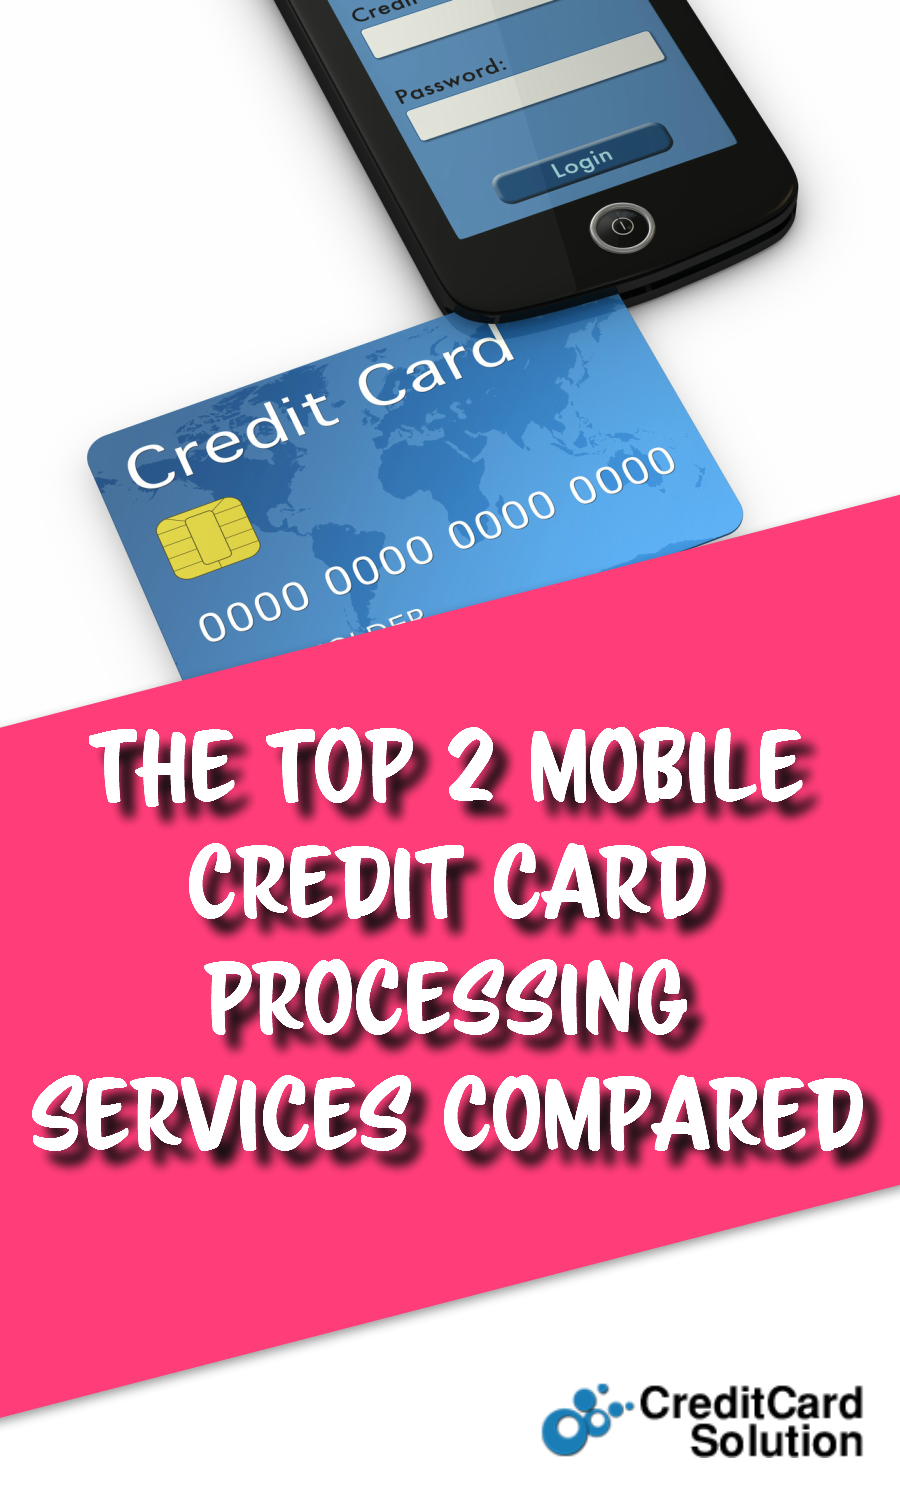 The Top 2 Mobile Credit Card Processing Services Compared